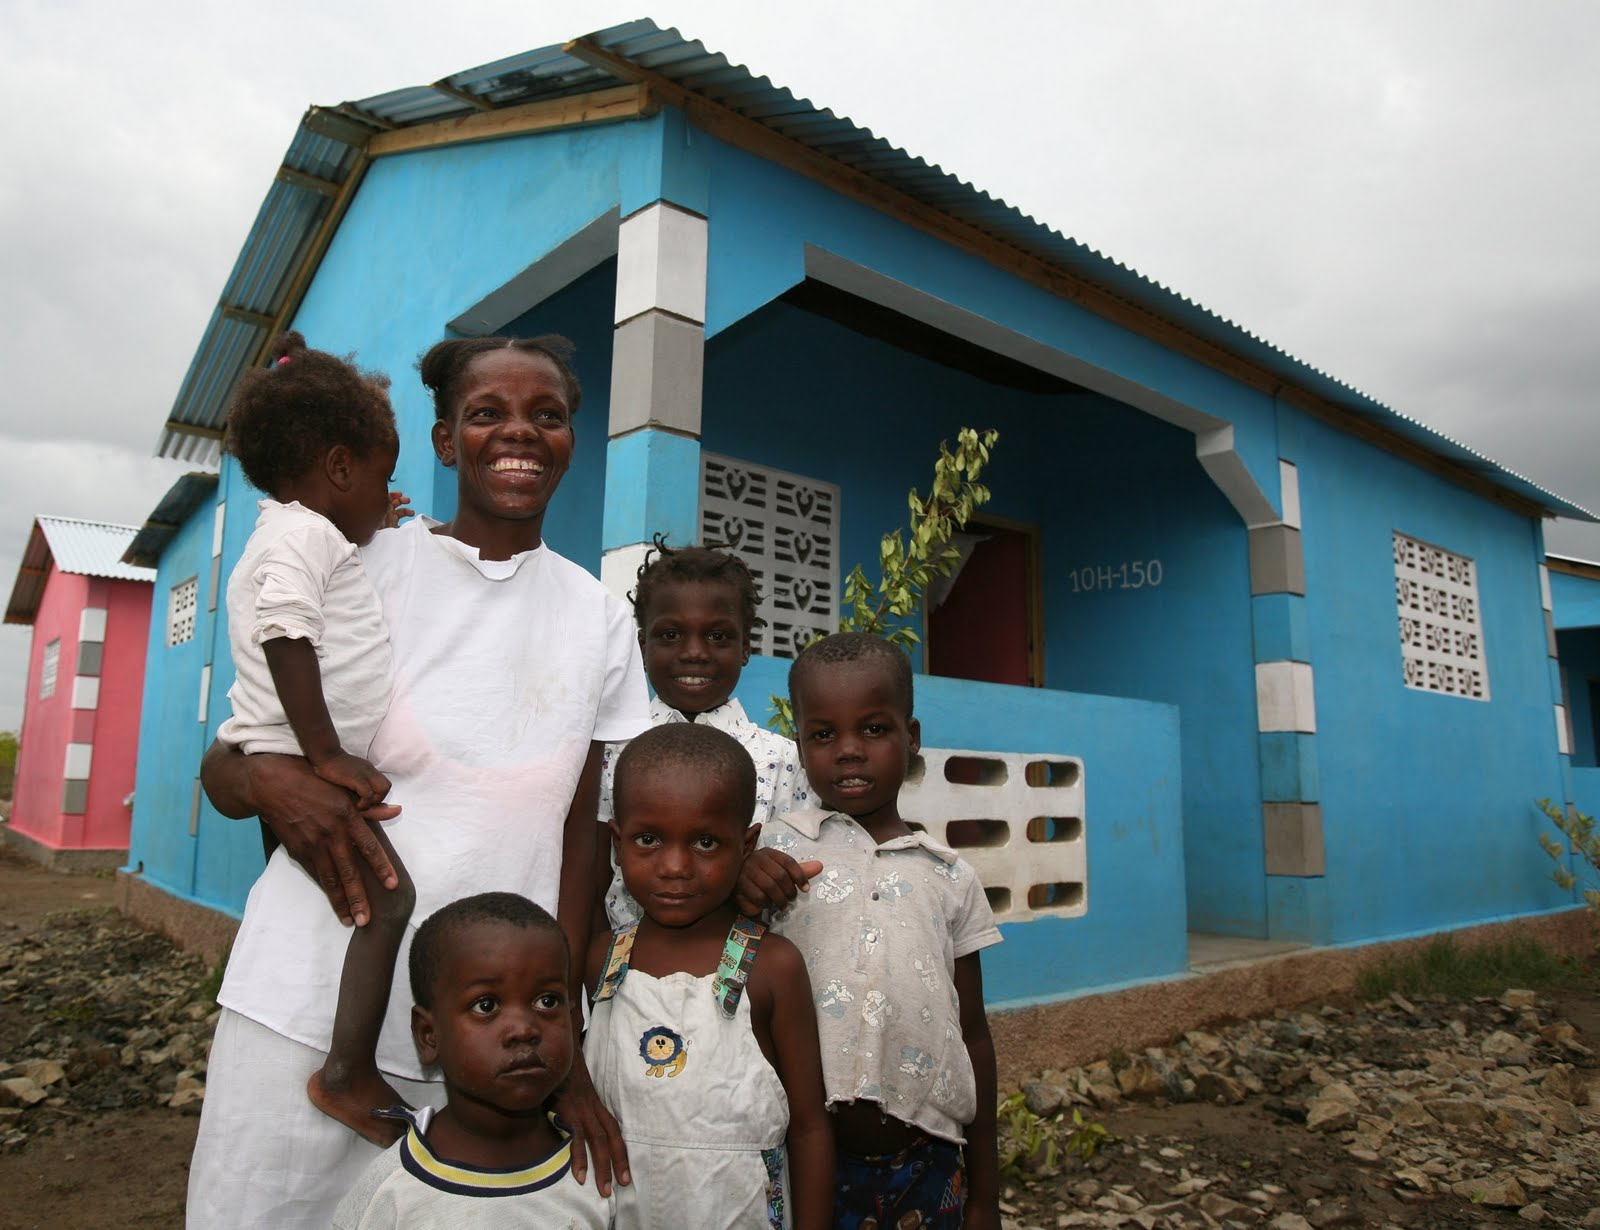 my project of creating a music school in haiti to help unprivileged kids Busy kids take time to help others kids today are busy school jeremiah and his family traveled to haiti with soles4souls to deliver the shoes to kids.